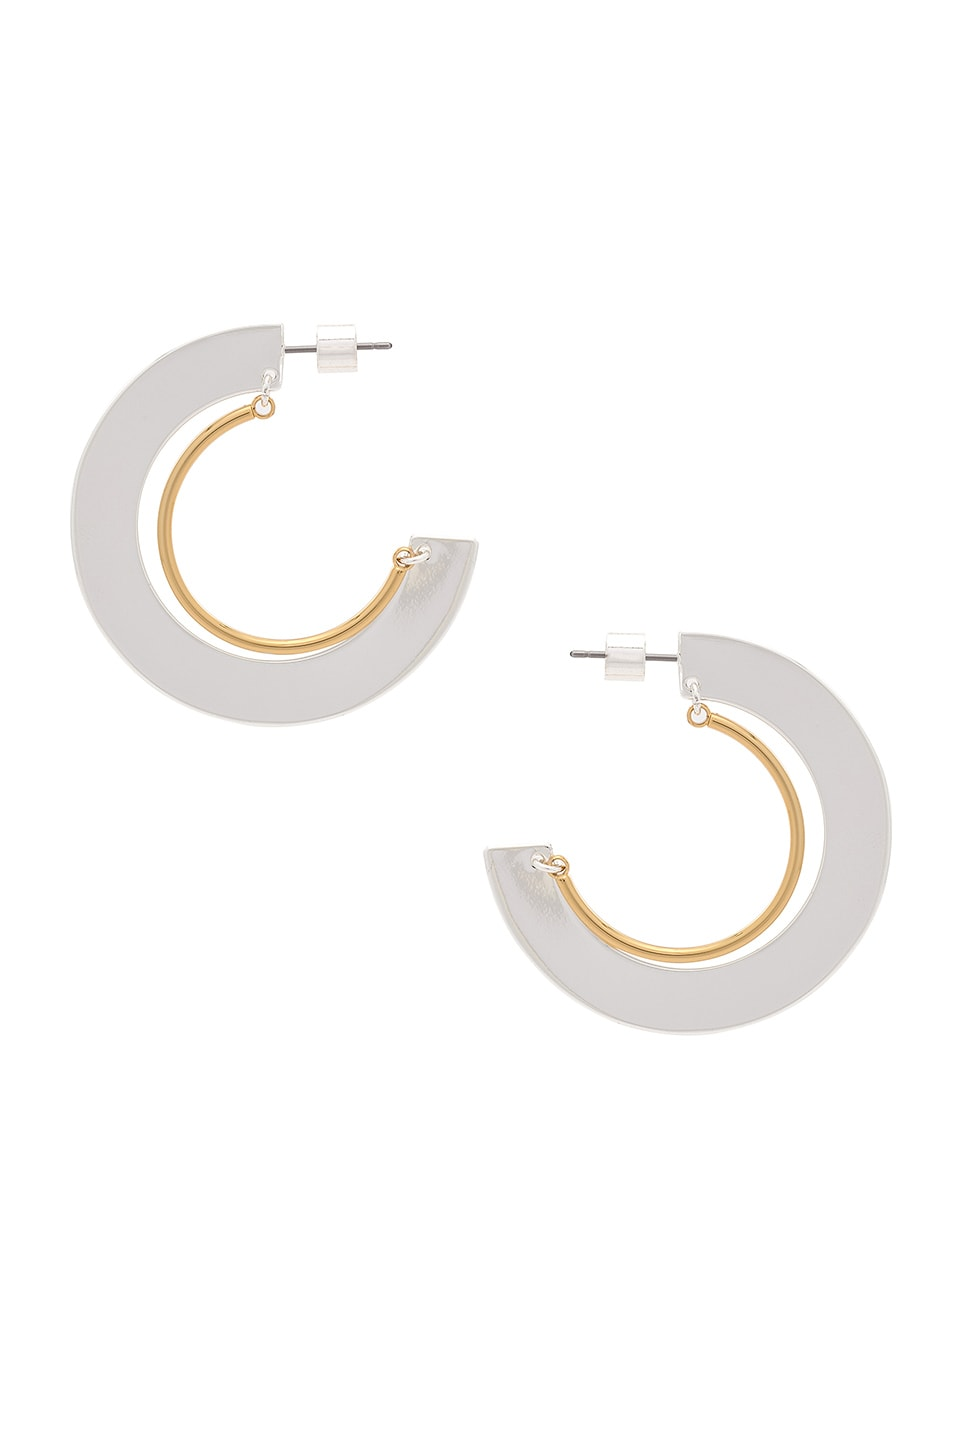 Jenny Bird Uma Hoops in Silver & Gold